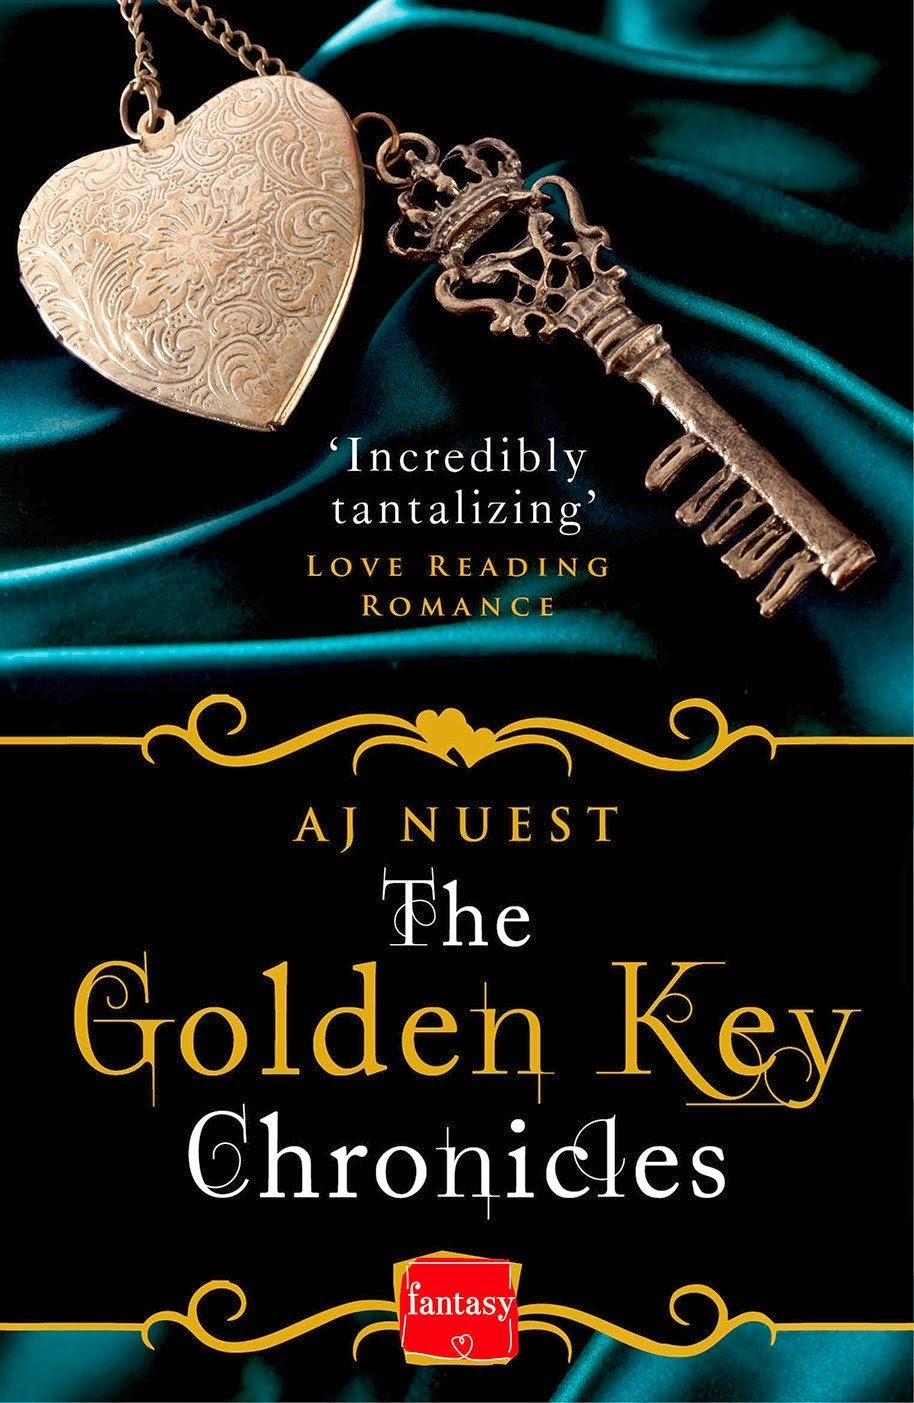 The Golden Key Chronicles by A J Nuest